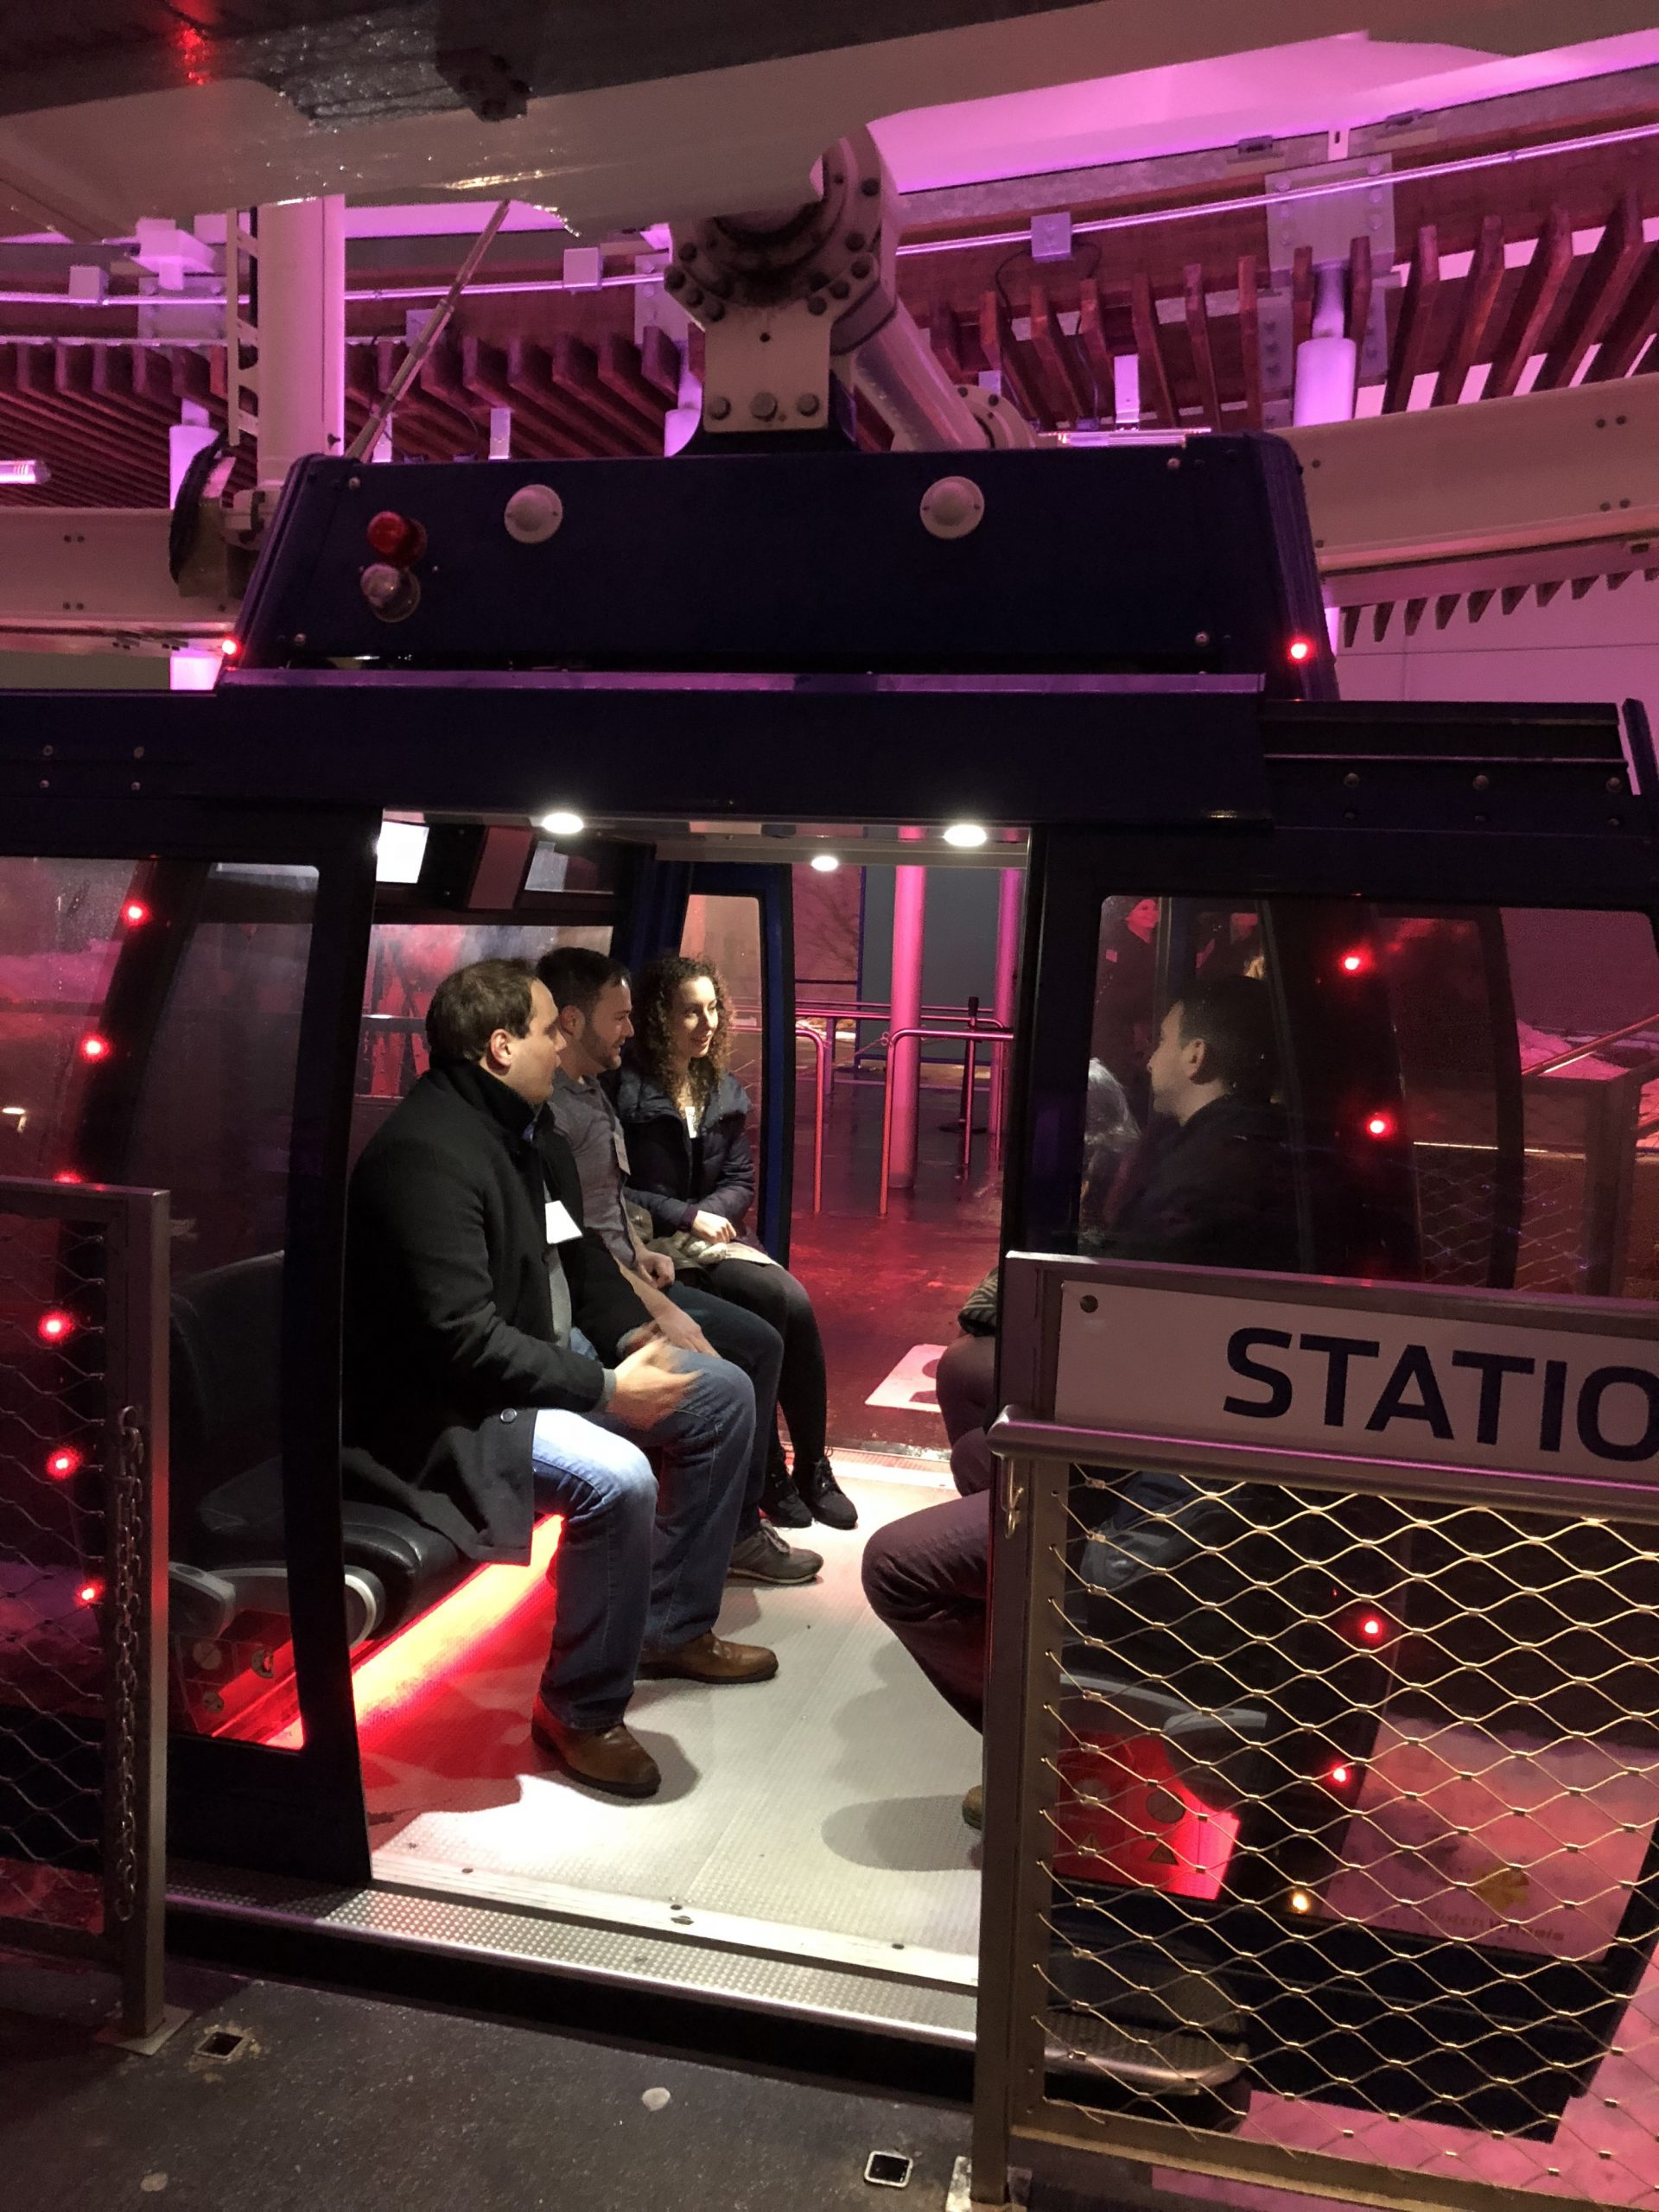 Each speed date lasted a full revolution of the Ferris wheel (about 12 minutes)